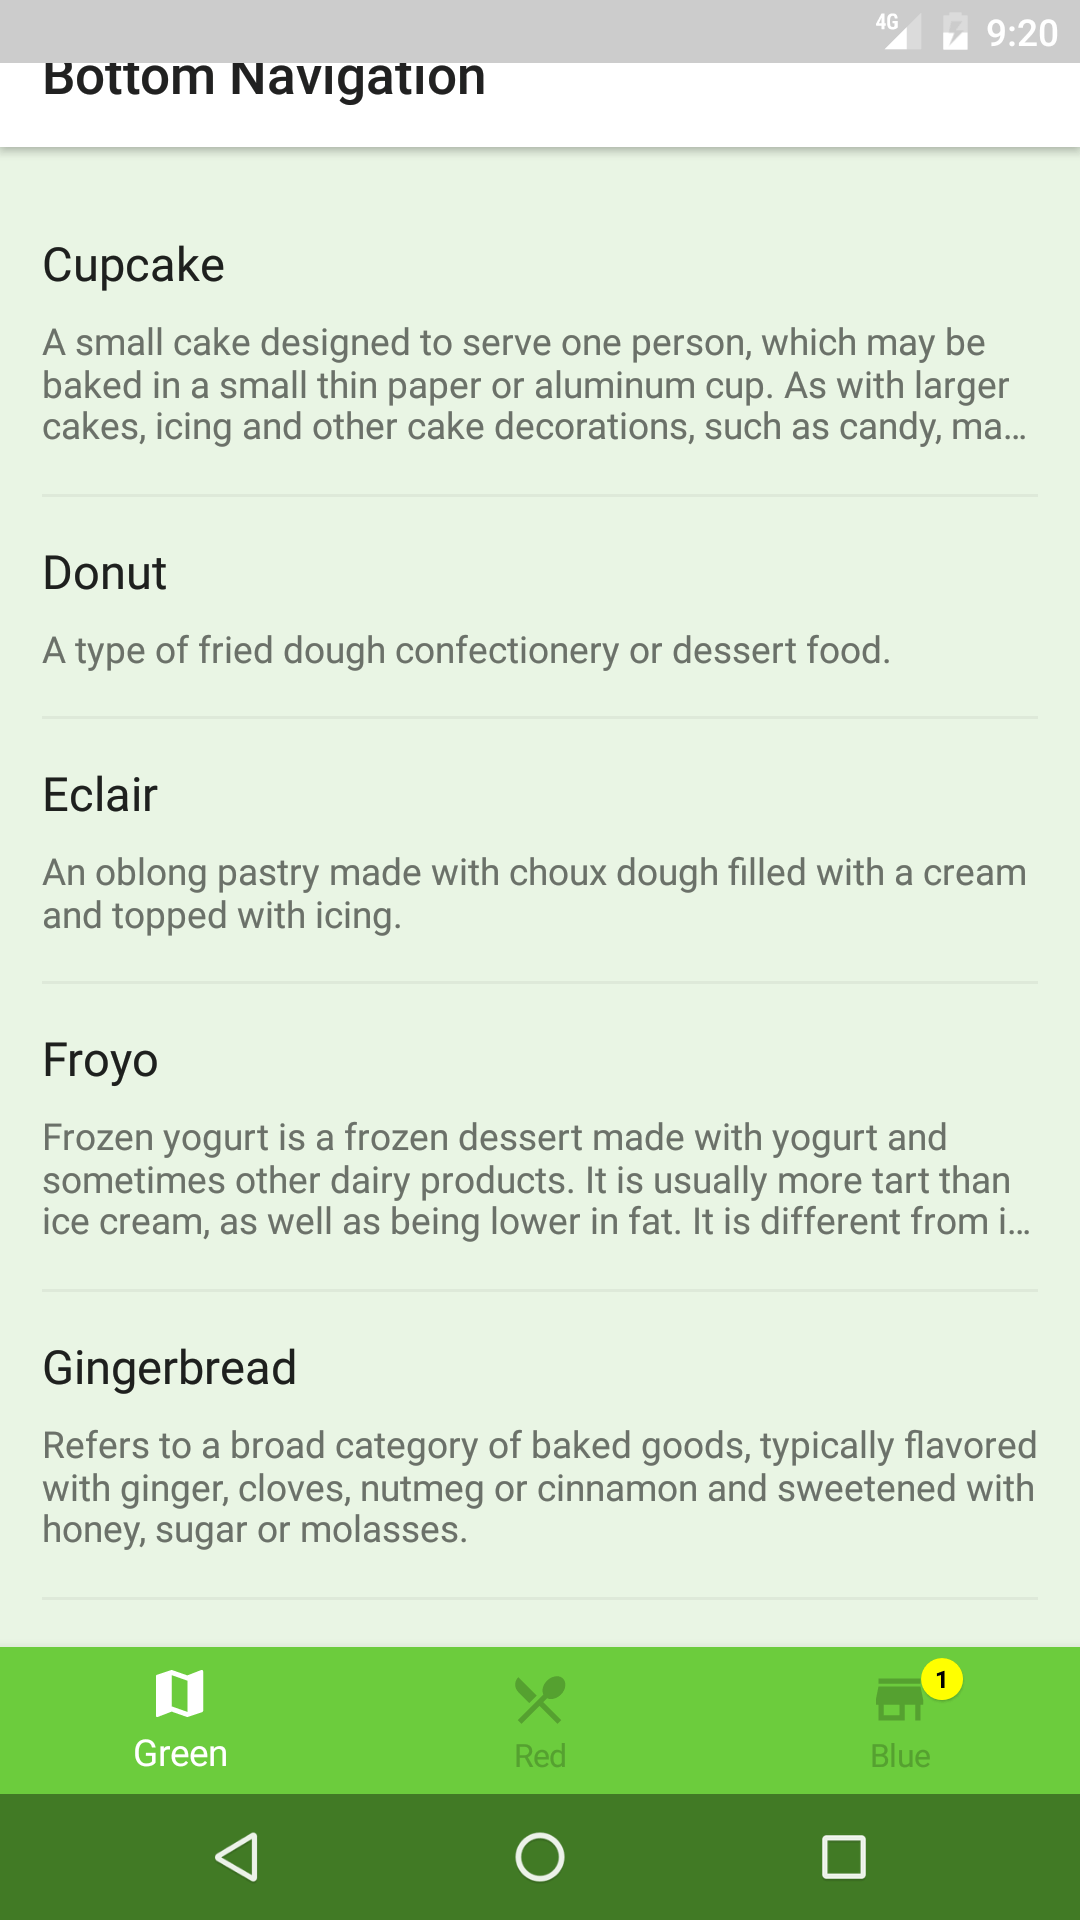 Bottom Navigation Bar with Fragments - Android Tutorial